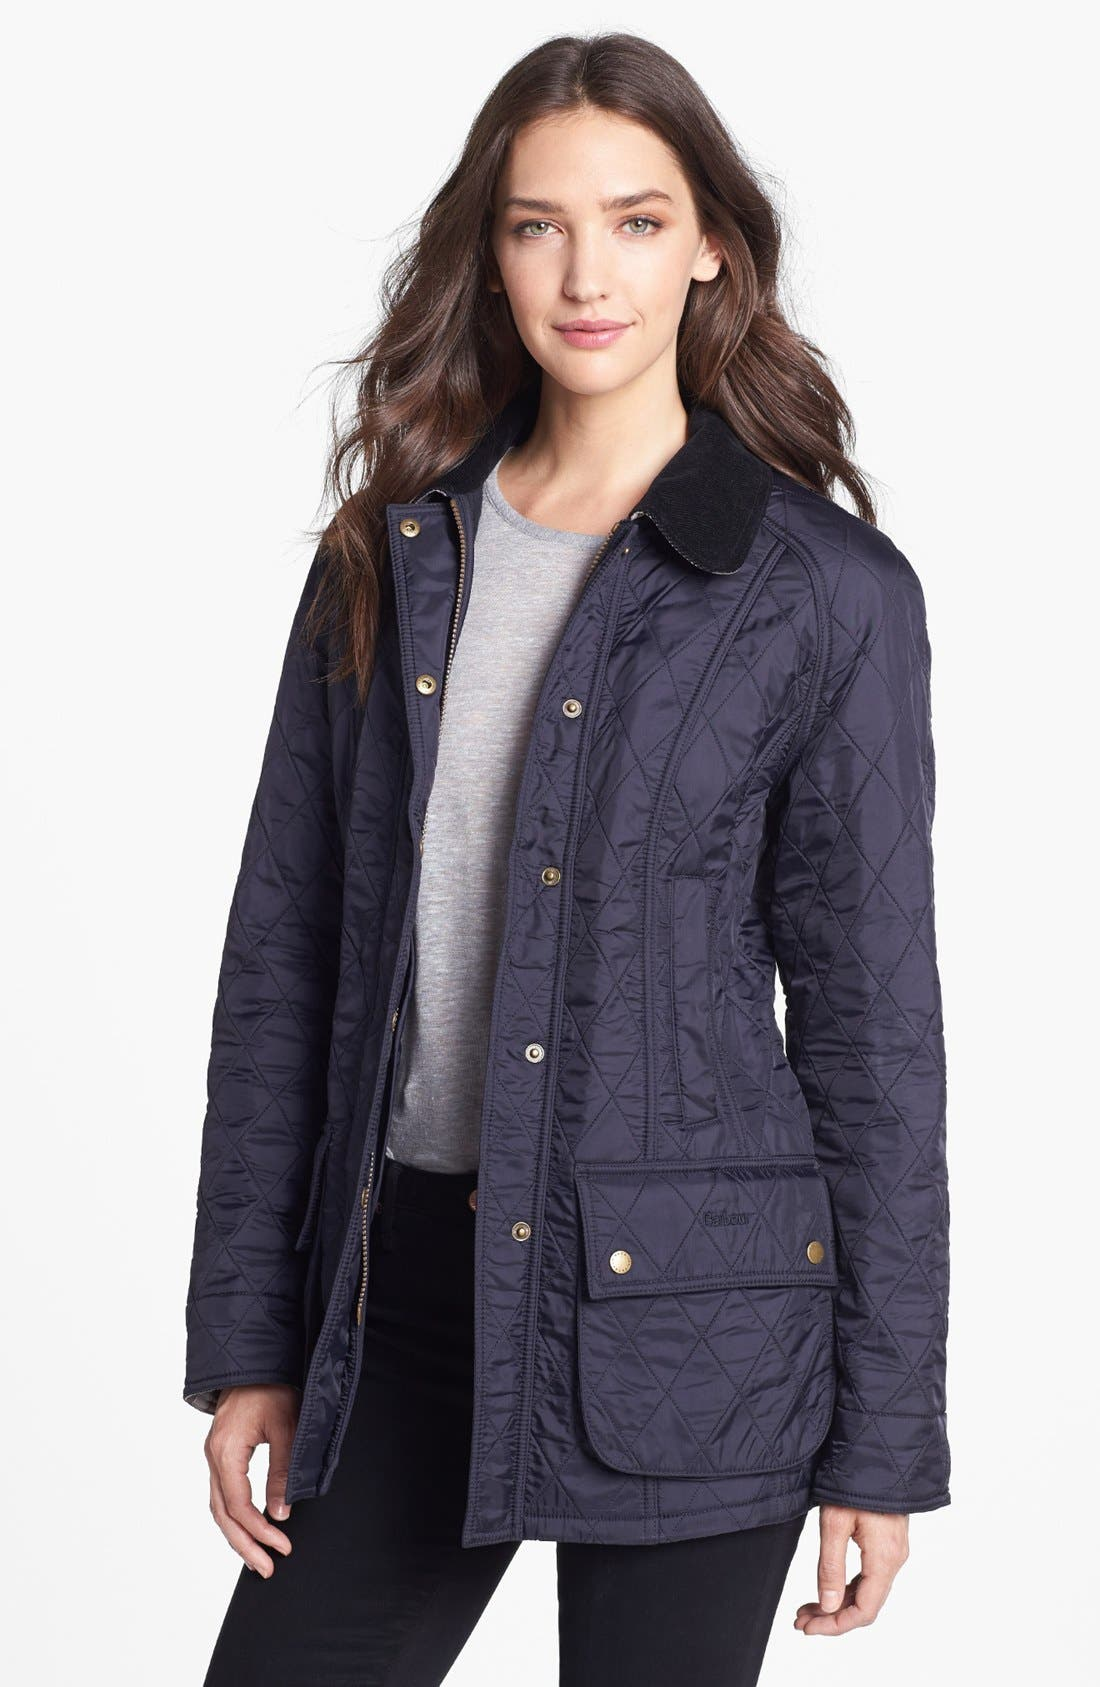 Barbour 'Beadnell' Quilted Jacket